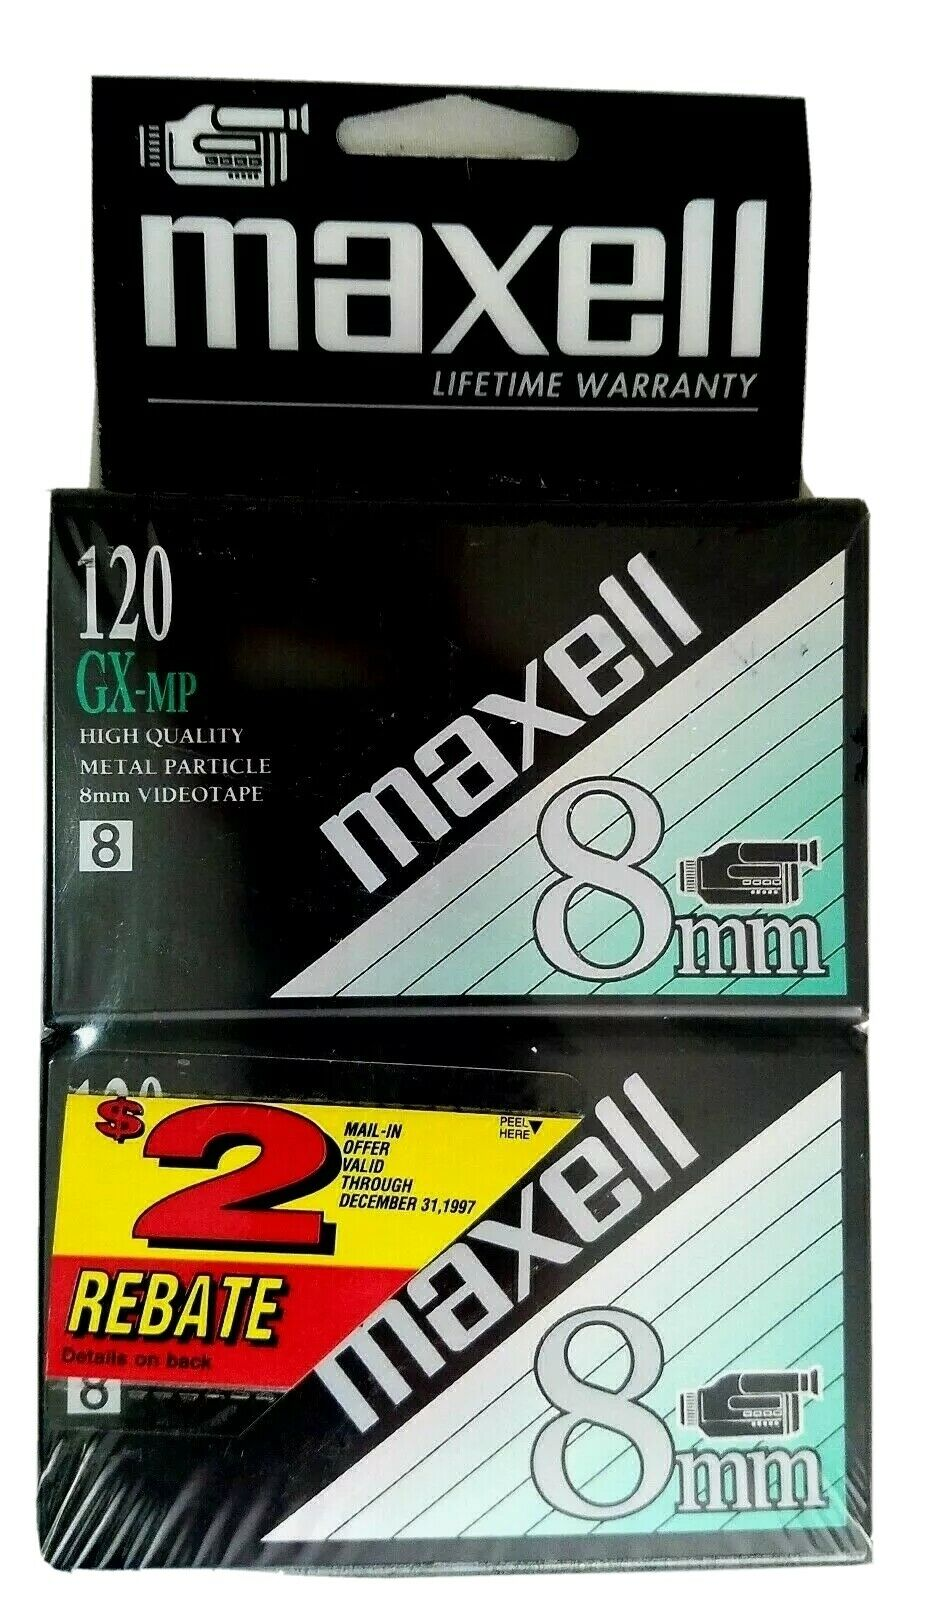 Maxell GX-MP Camcorder Recording Tapes 120 8 mm 2 Pack New Sealed Vintage